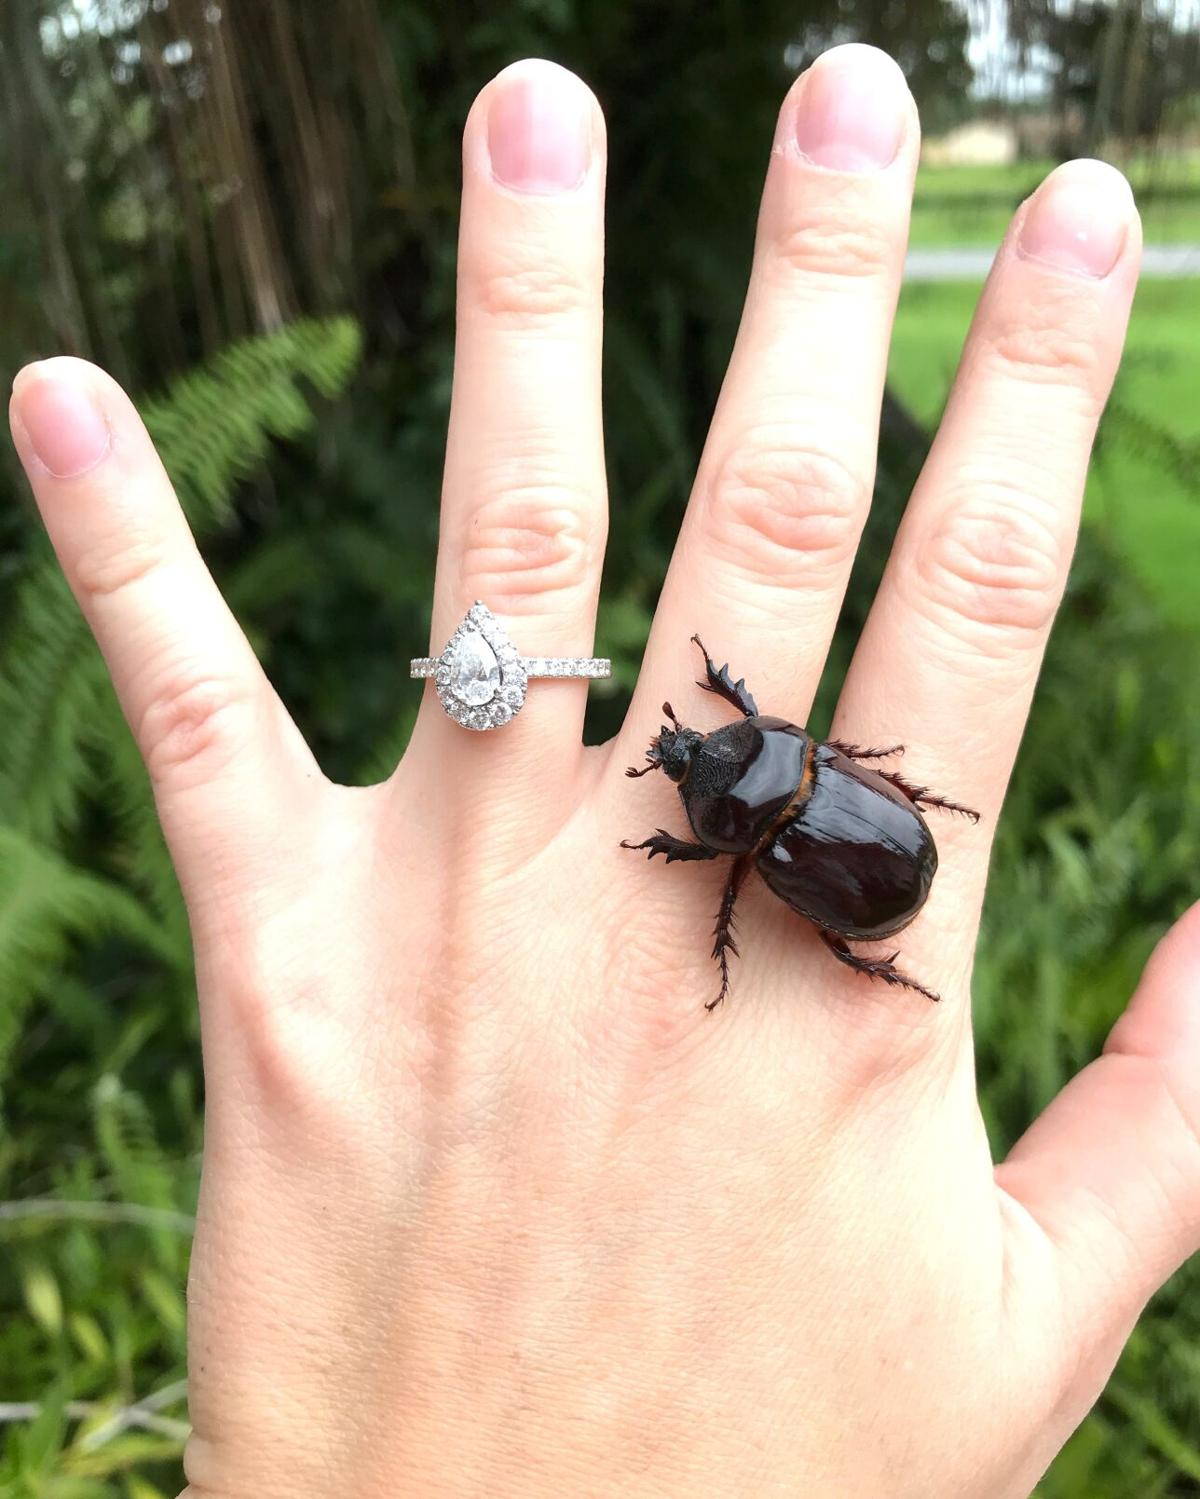 Wildlife Moment ox beetle A